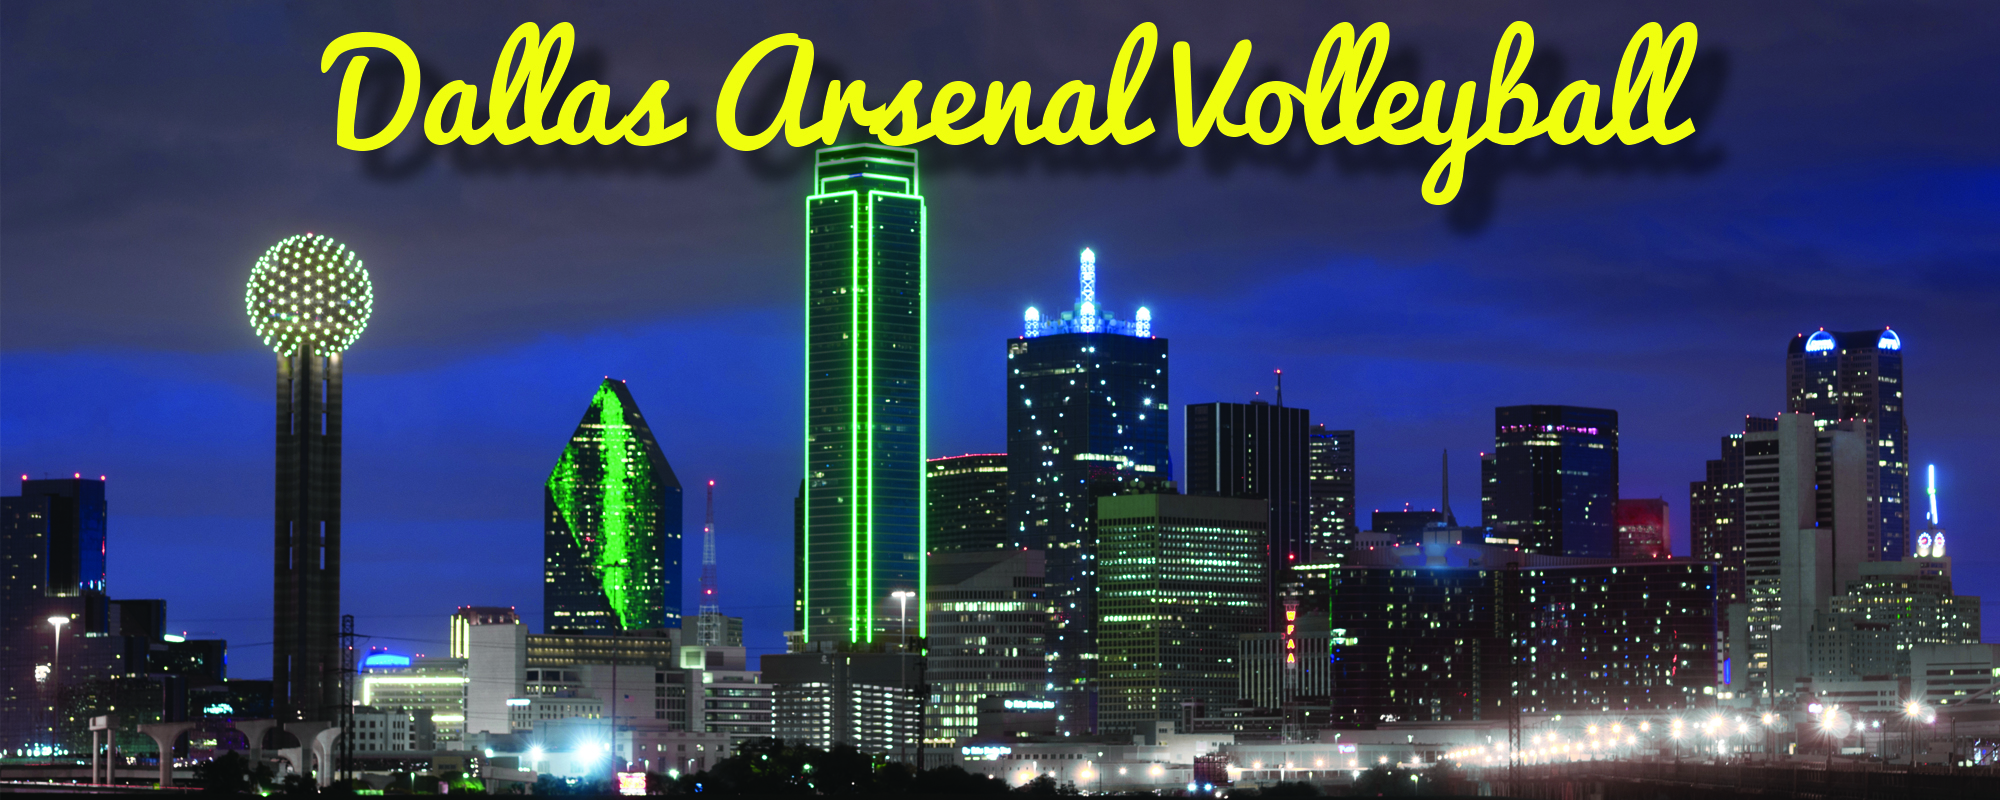 Contact Dallas Arsenal Volleyball.